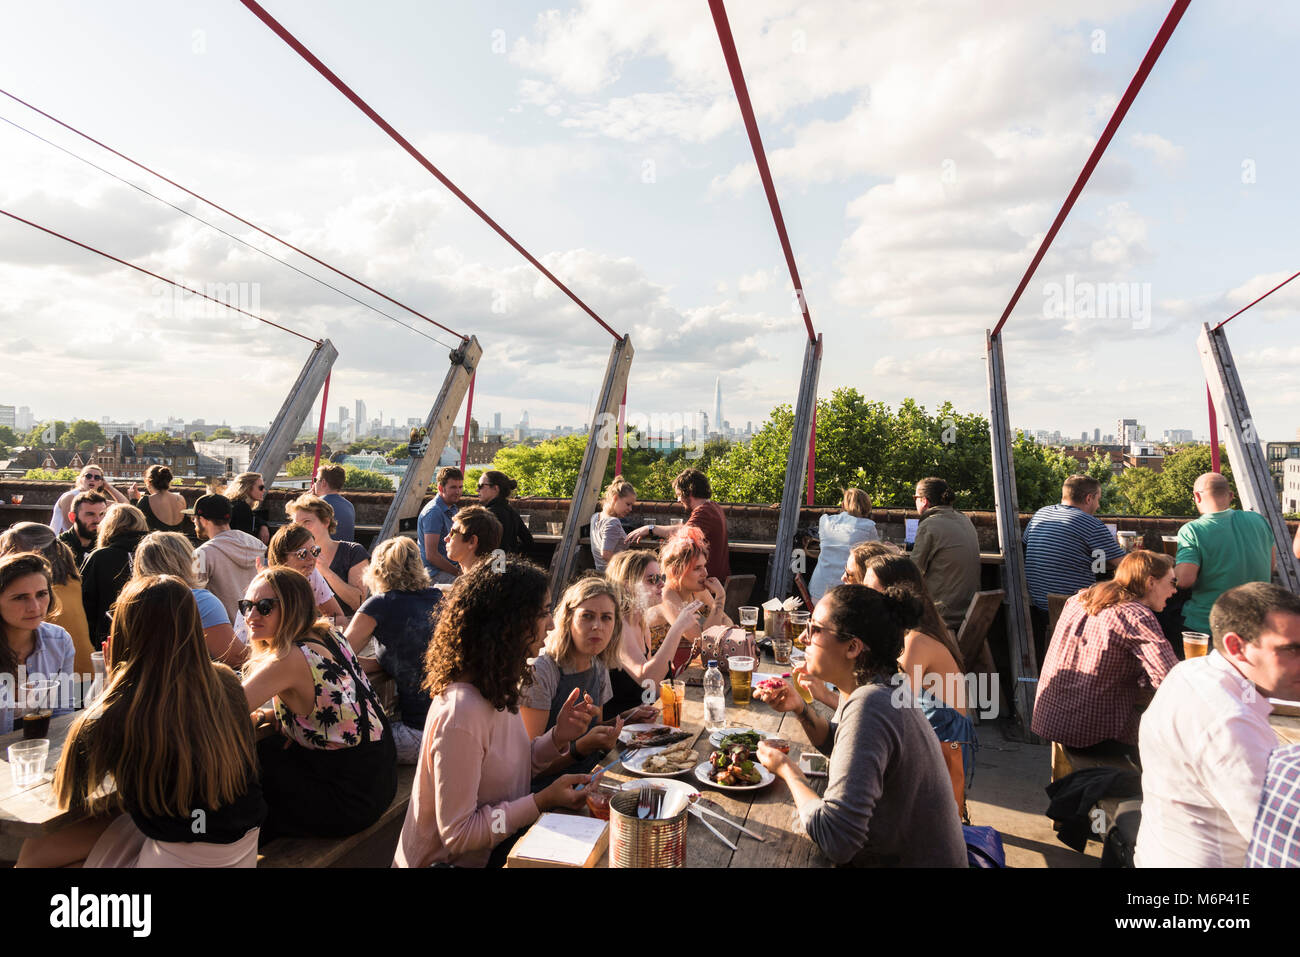 Young people socialising and enjoying a drink together at Franks Cafe outdoor rooftop bar and restaurant with view - Stock Image